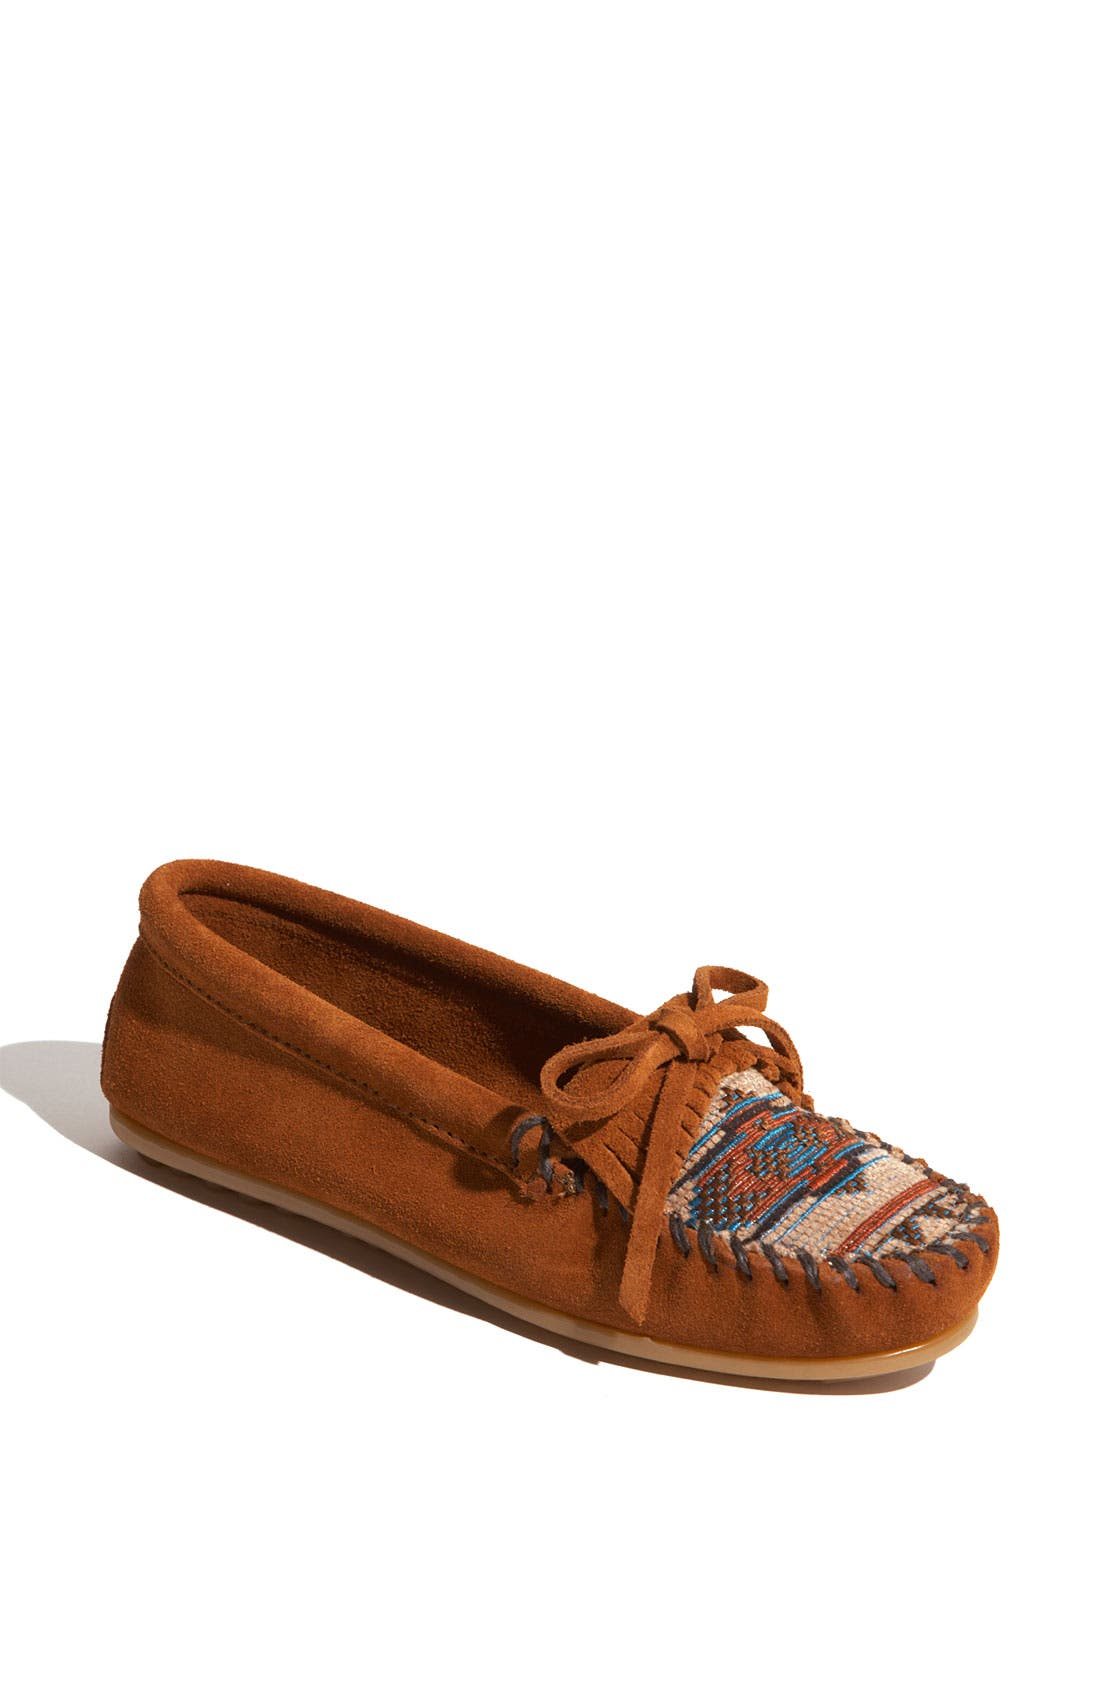 Alternate Image 1 Selected - Minnetonka 'El Paso II' Suede Moccasin